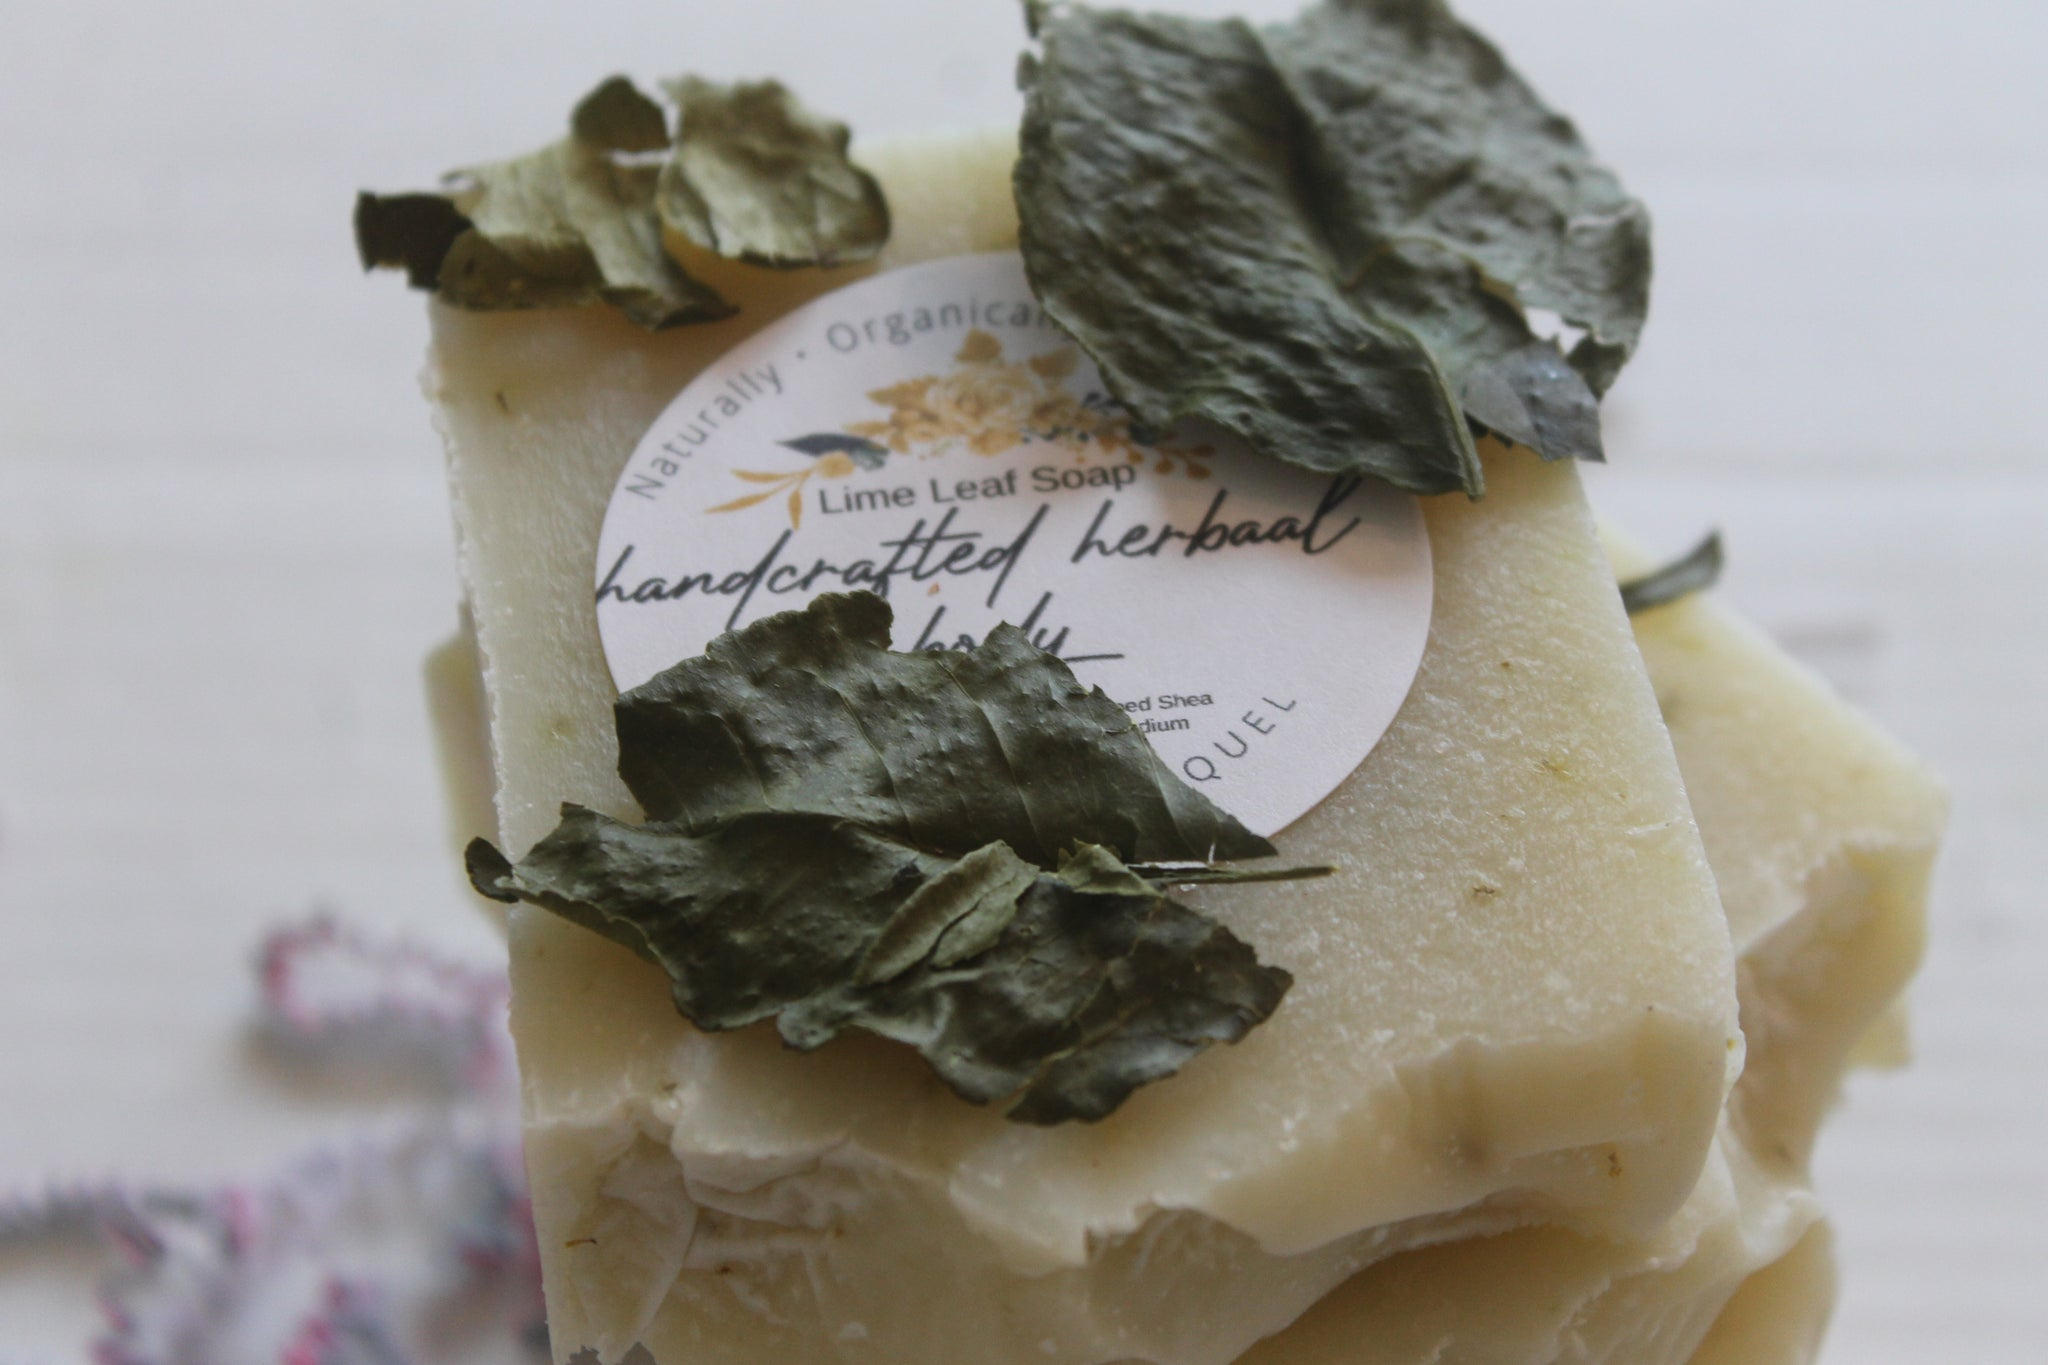 Handcrafted Herbal Lime Leaf Soap